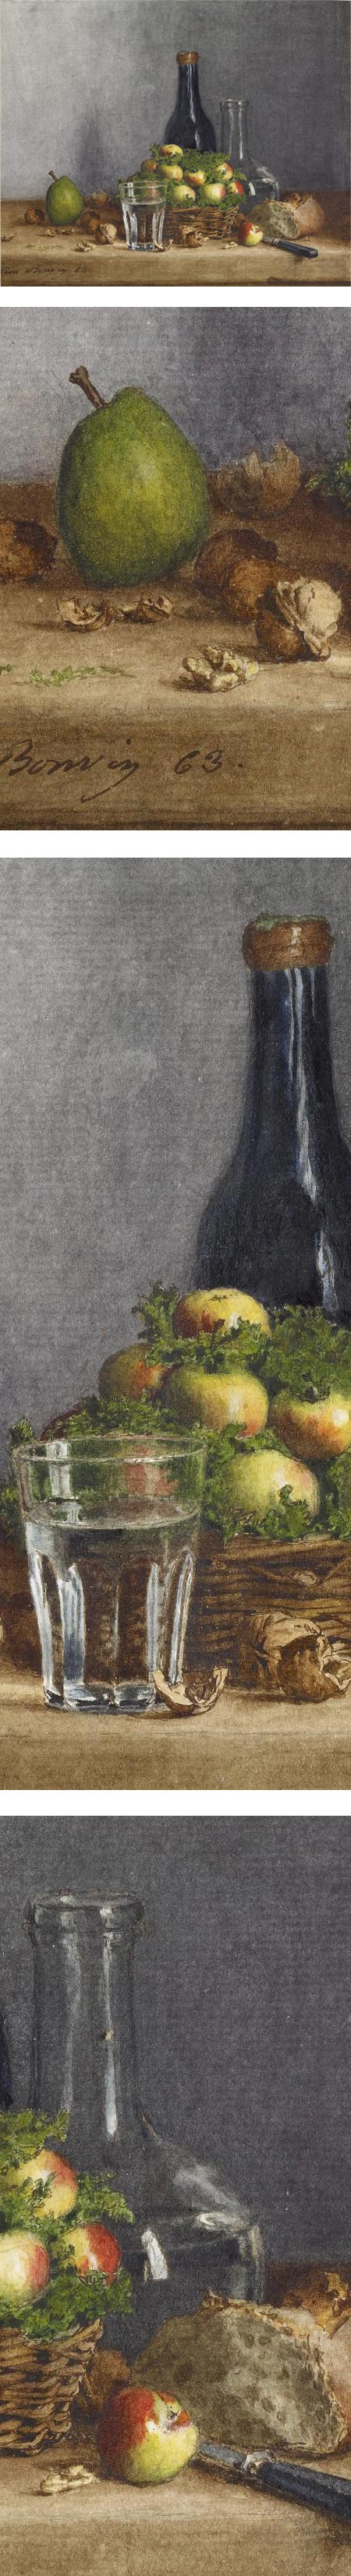 Still Life: Basket of Apples, Pear, Walnuts and Knife; Leon Bonvin